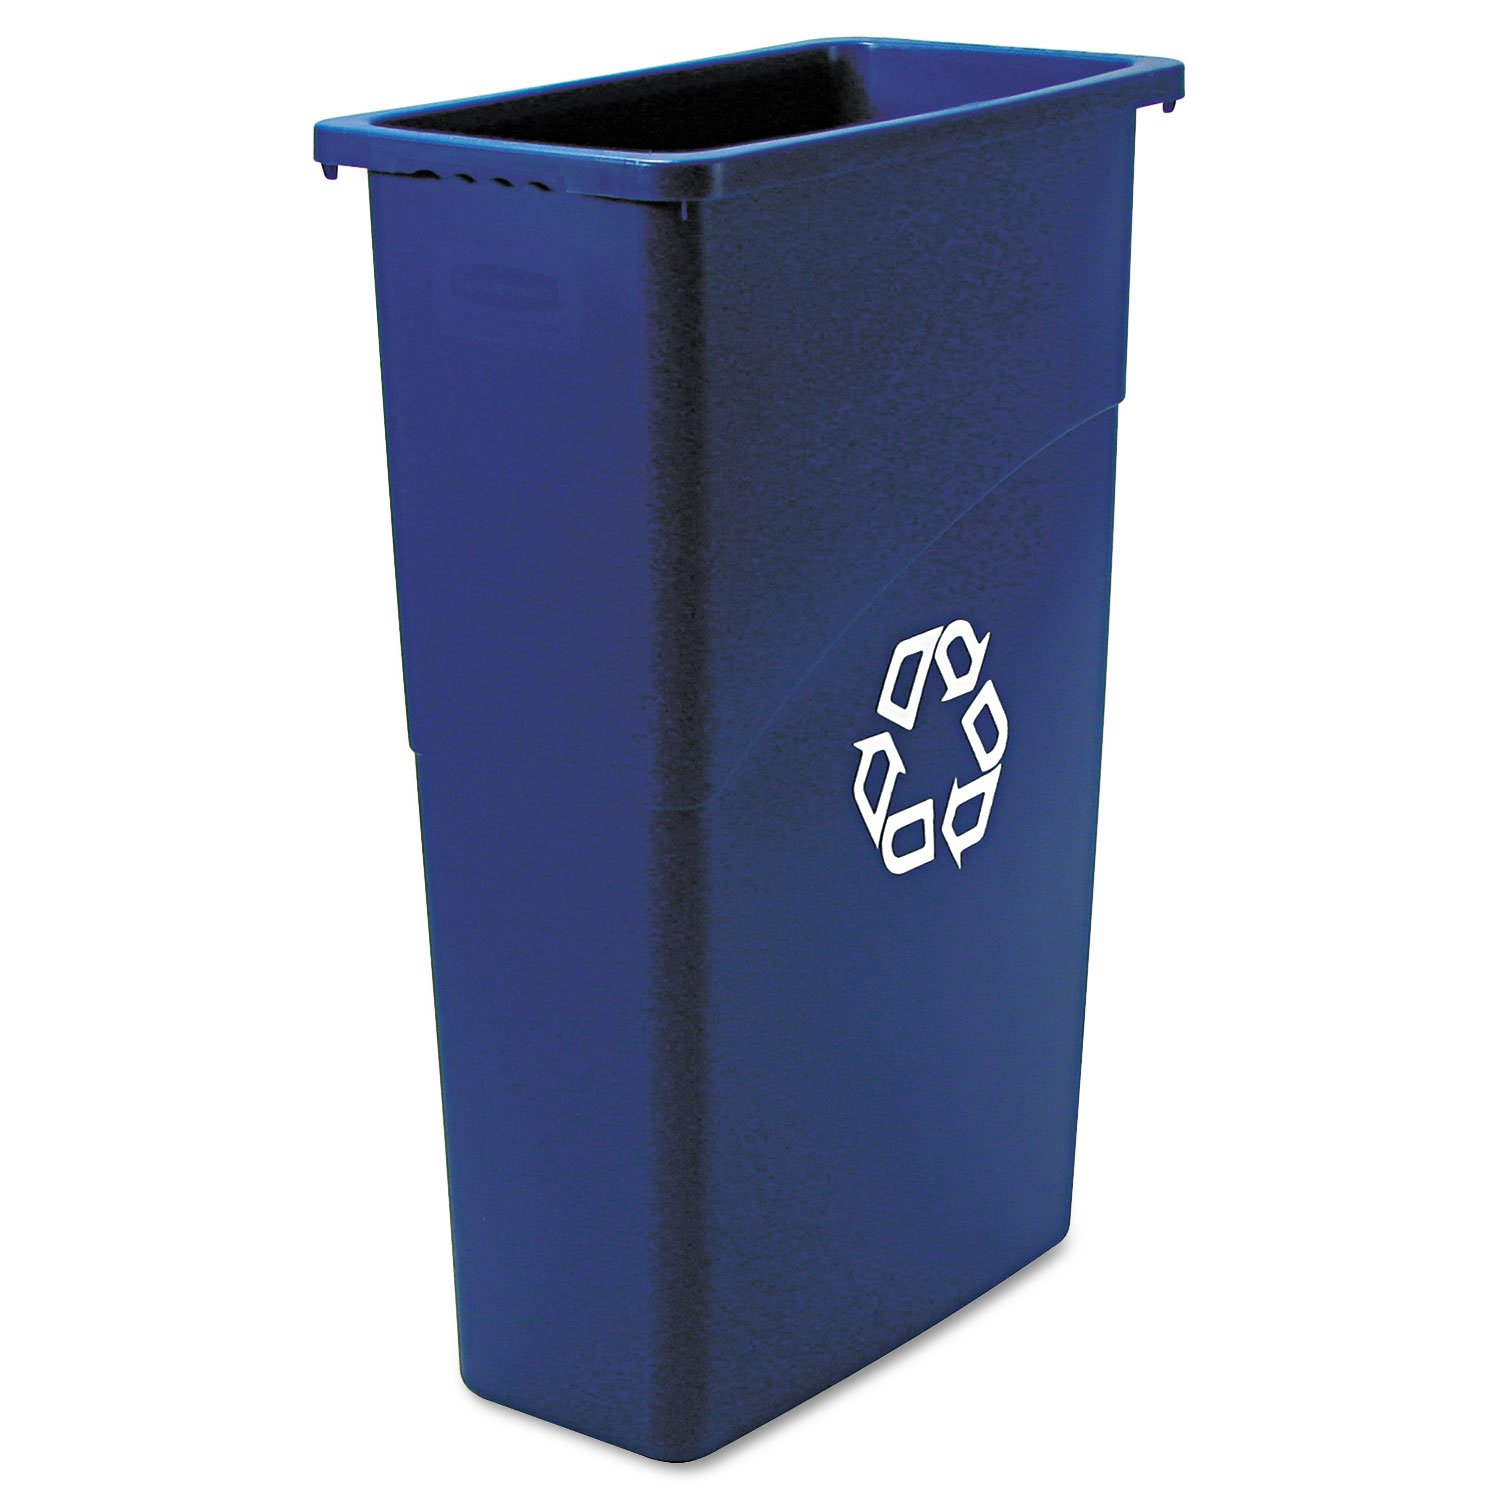 Rubbermaid Commercial Slim Jim Recycling Container RCP354075BE 172292